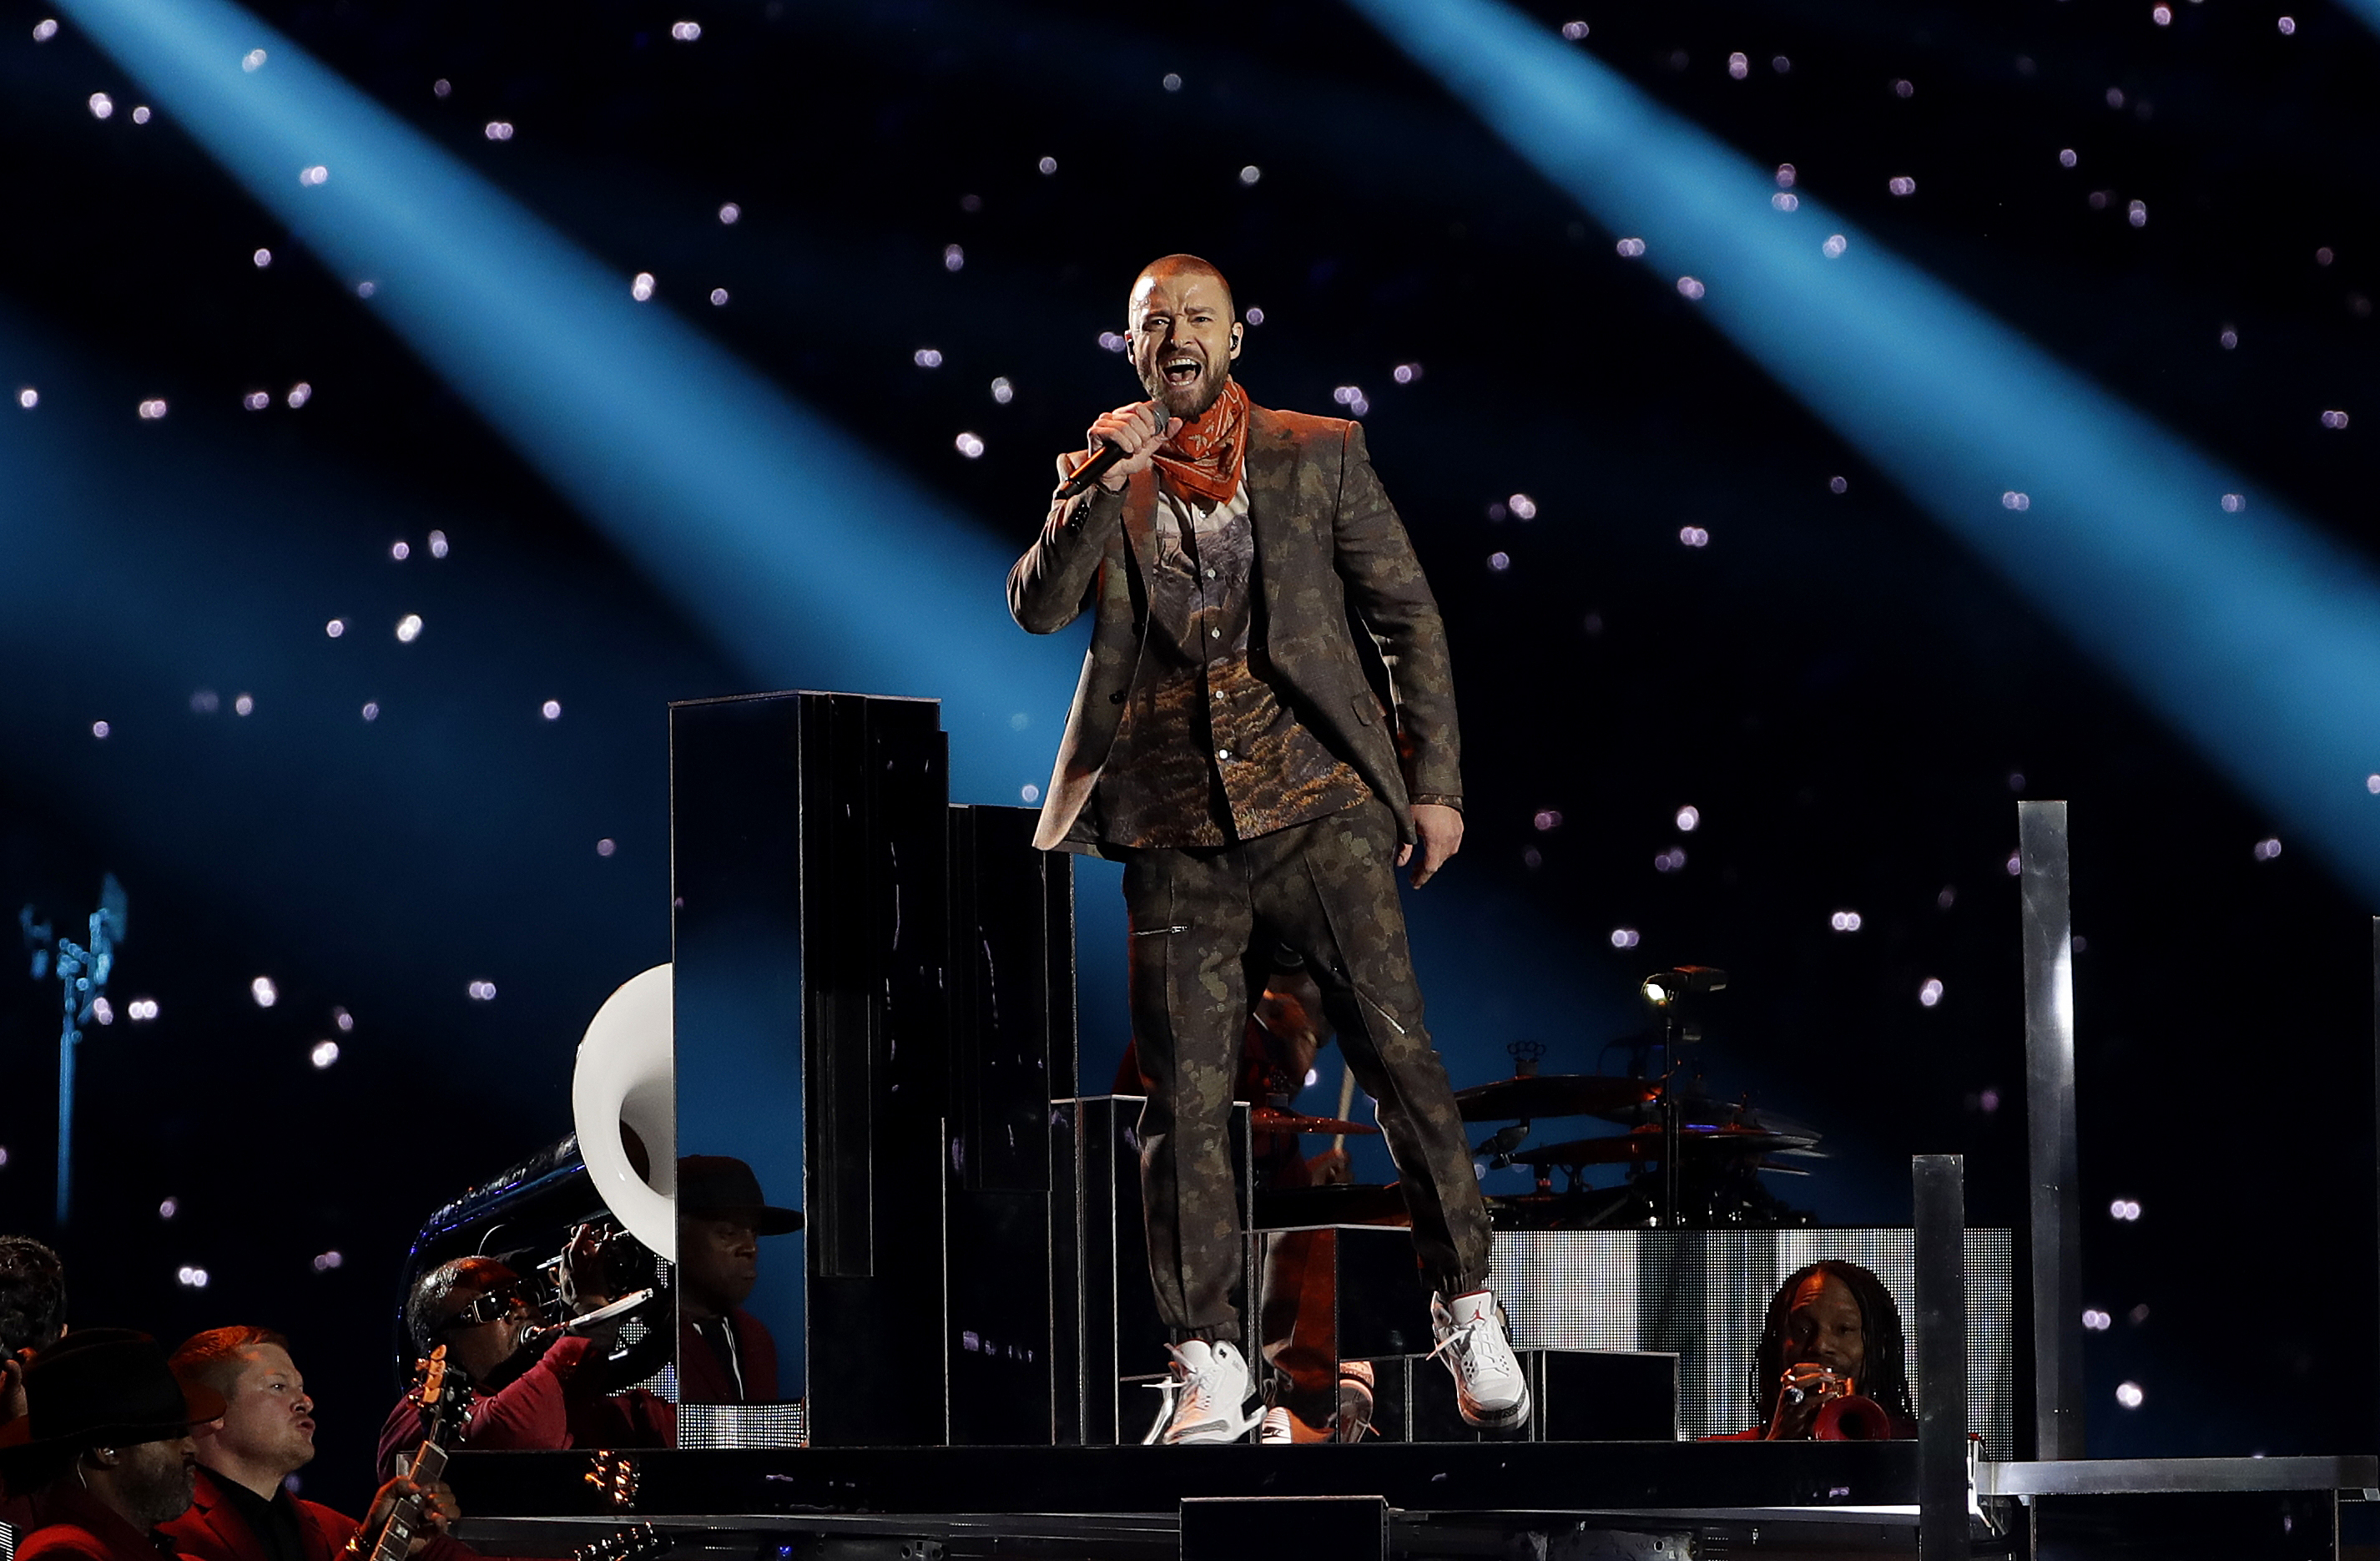 "<div class=""meta image-caption""><div class=""origin-logo origin-image ap""><span>AP</span></div><span class=""caption-text"">Justin Timberlake performs during halftime of the NFL Super Bowl 52 football game between the Philadelphia Eagles and the New England Patriots, Sunday, Feb. 4, 2018. (AP Photo/Matt Slocum)</span></div>"